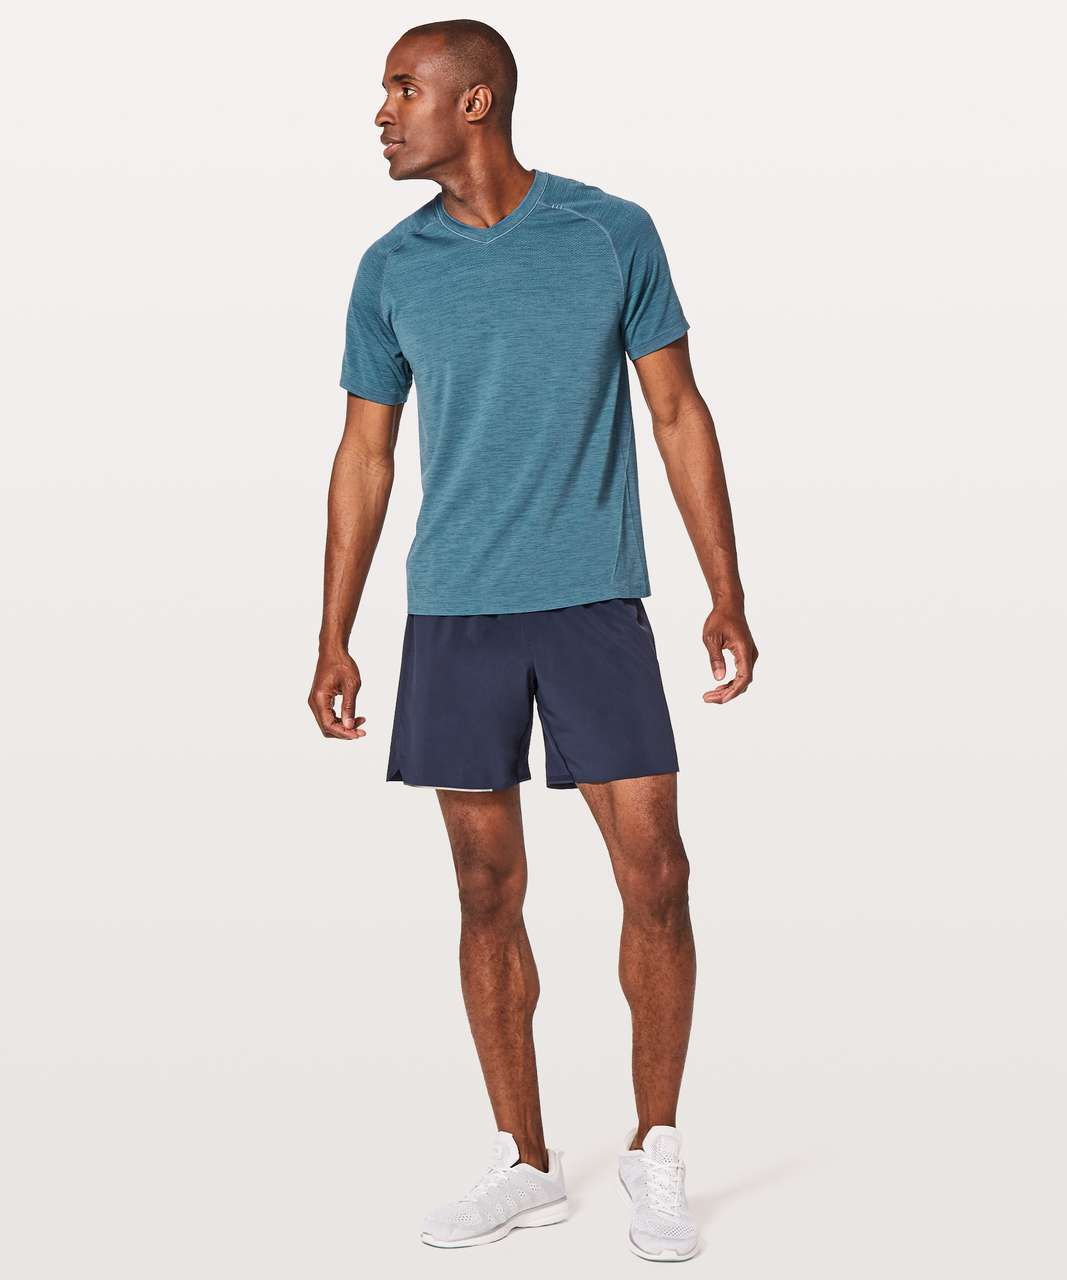 Lululemon Metal Vent Tech Short Sleeve V - Poseidon / Hawk Blue